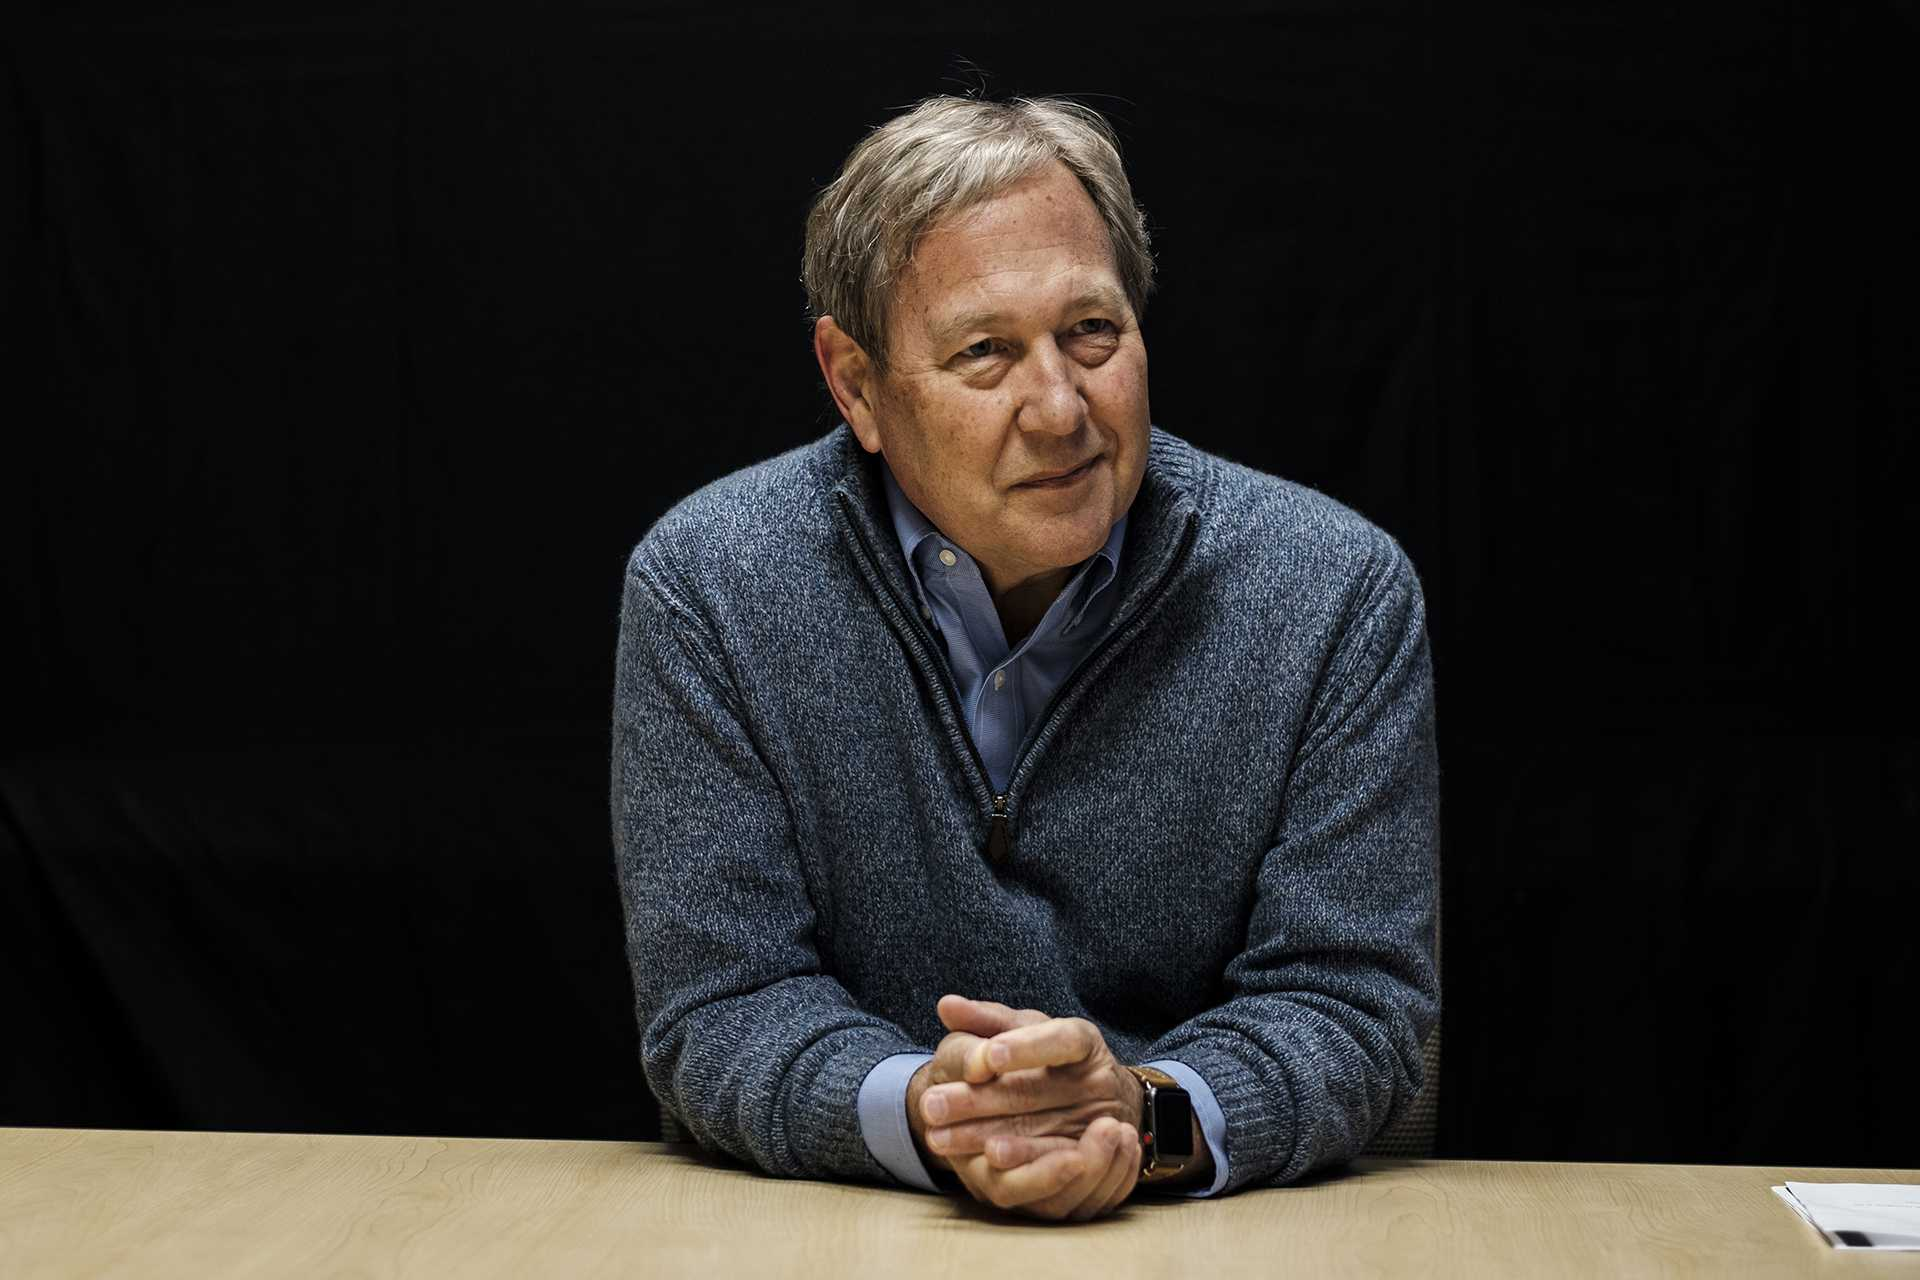 Bruce Harreld answers questions during an interview at the Adler Journalism Building on Dec. 7, 2017. The interview covered topics including tuition, alcohol in the greek community, and financial aid. (Nick Rohlman/The Daily Iowan)